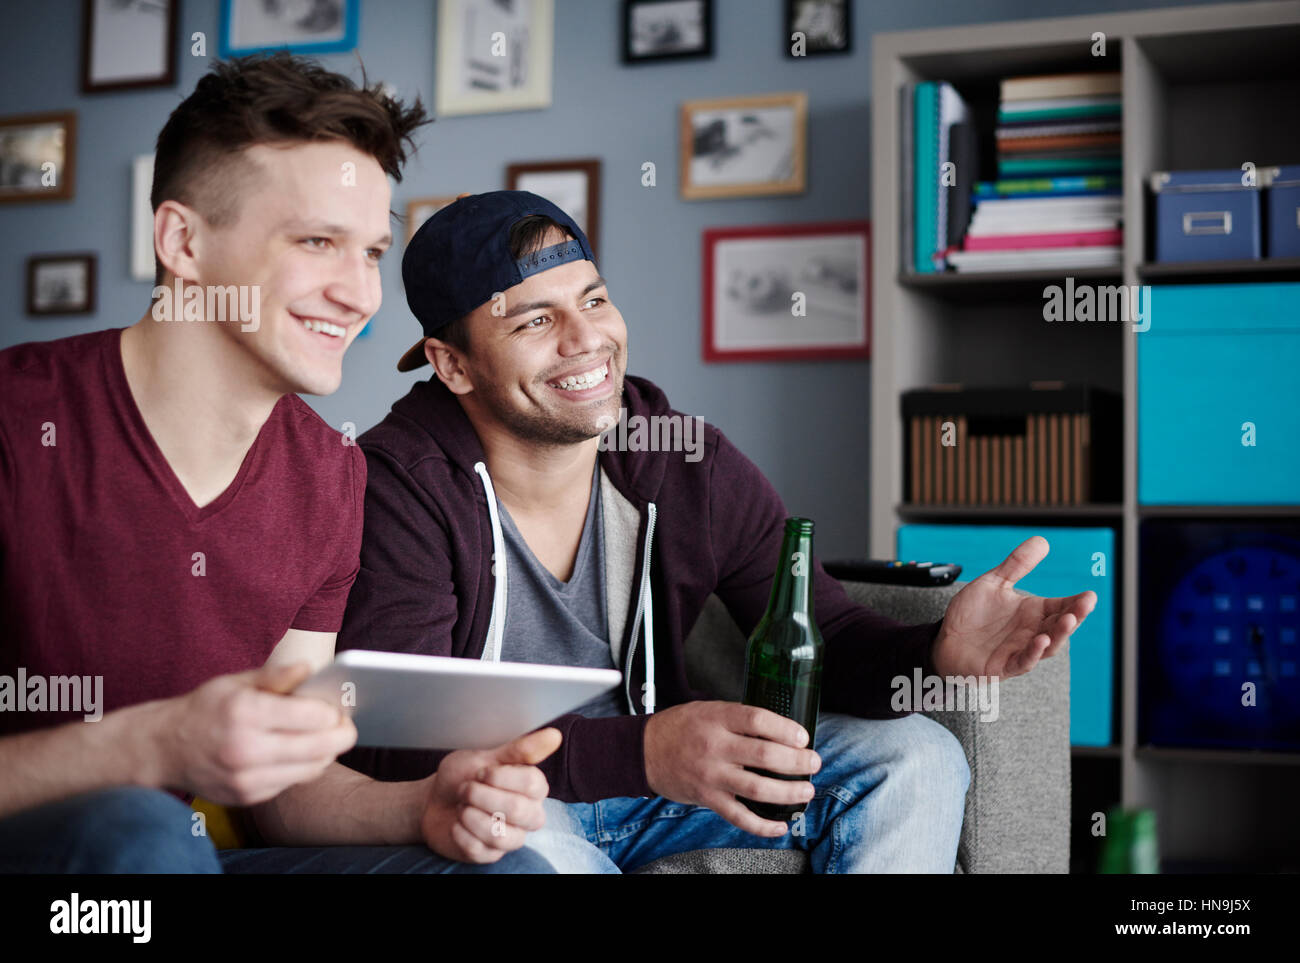 Close up of men with digital tablet and drink - Stock Image